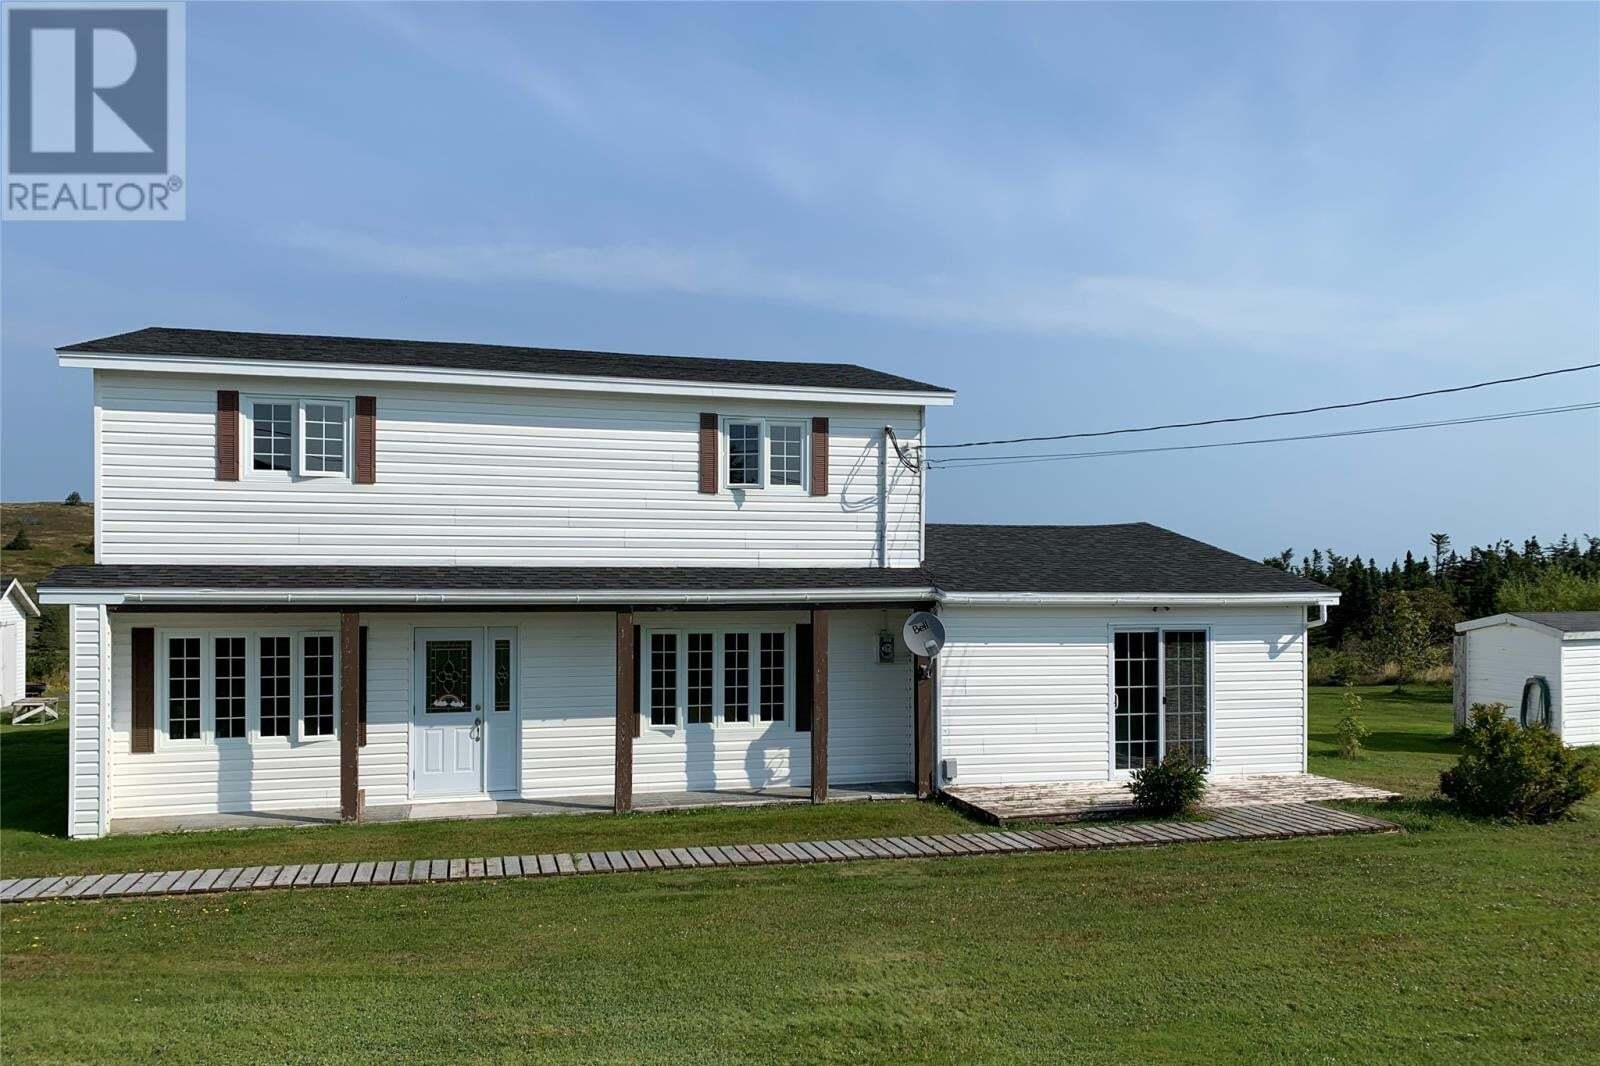 House for sale at 5 Mcdonald Rd Western Bay Newfoundland - MLS: 1221074